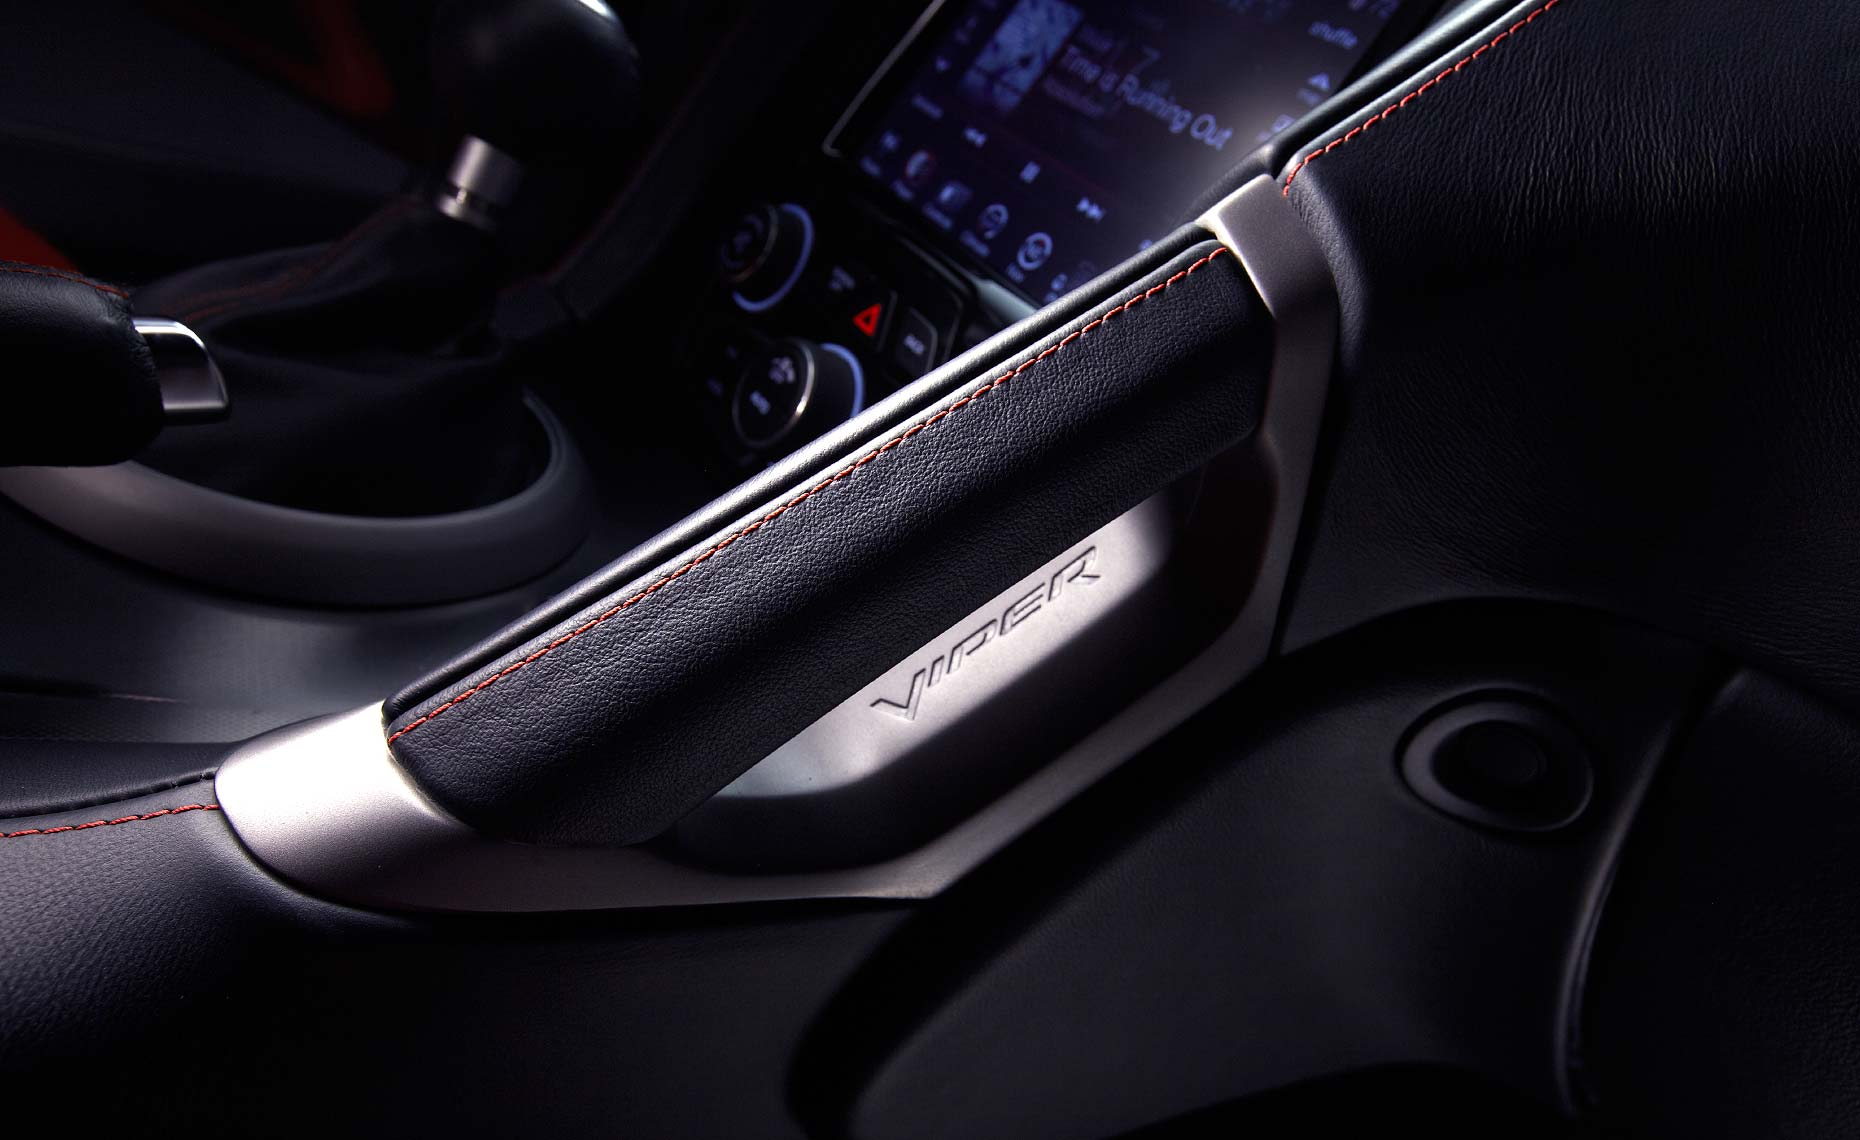 2013_viper_srt_dash detail.jpg